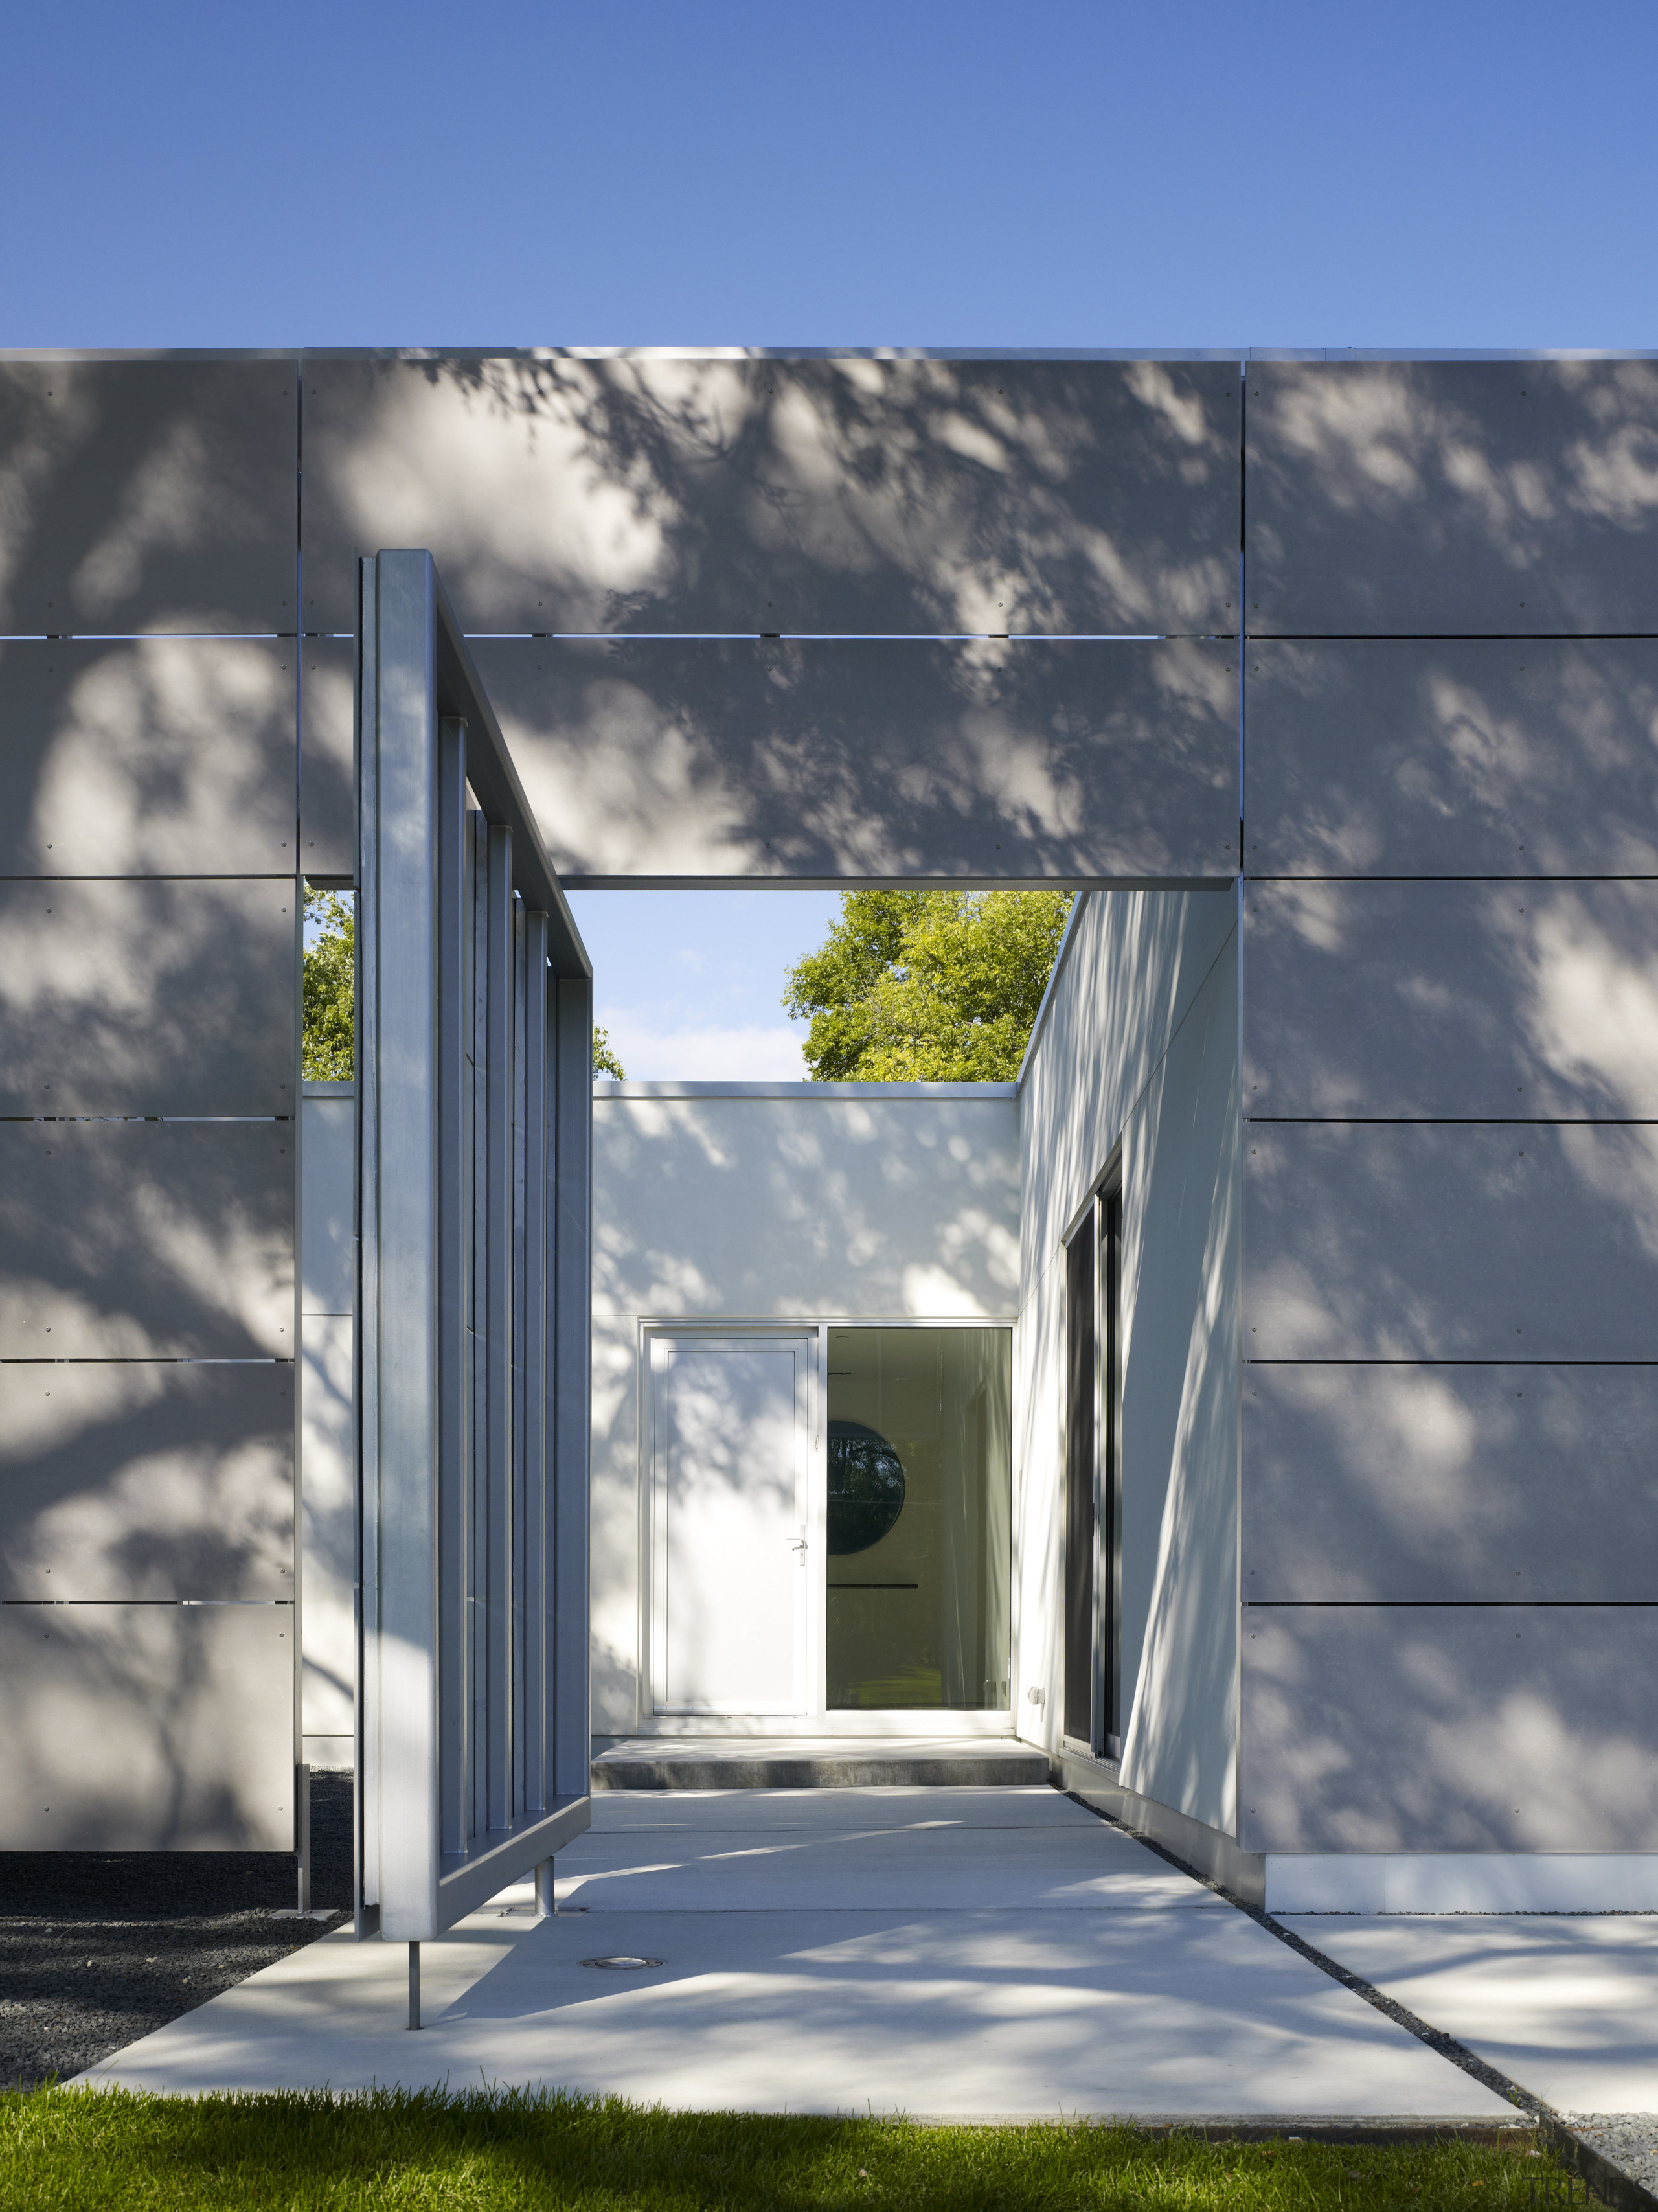 This door leads to an entry courtyard featuring architecture, building, daylighting, facade, home, house, residential area, sky, gray